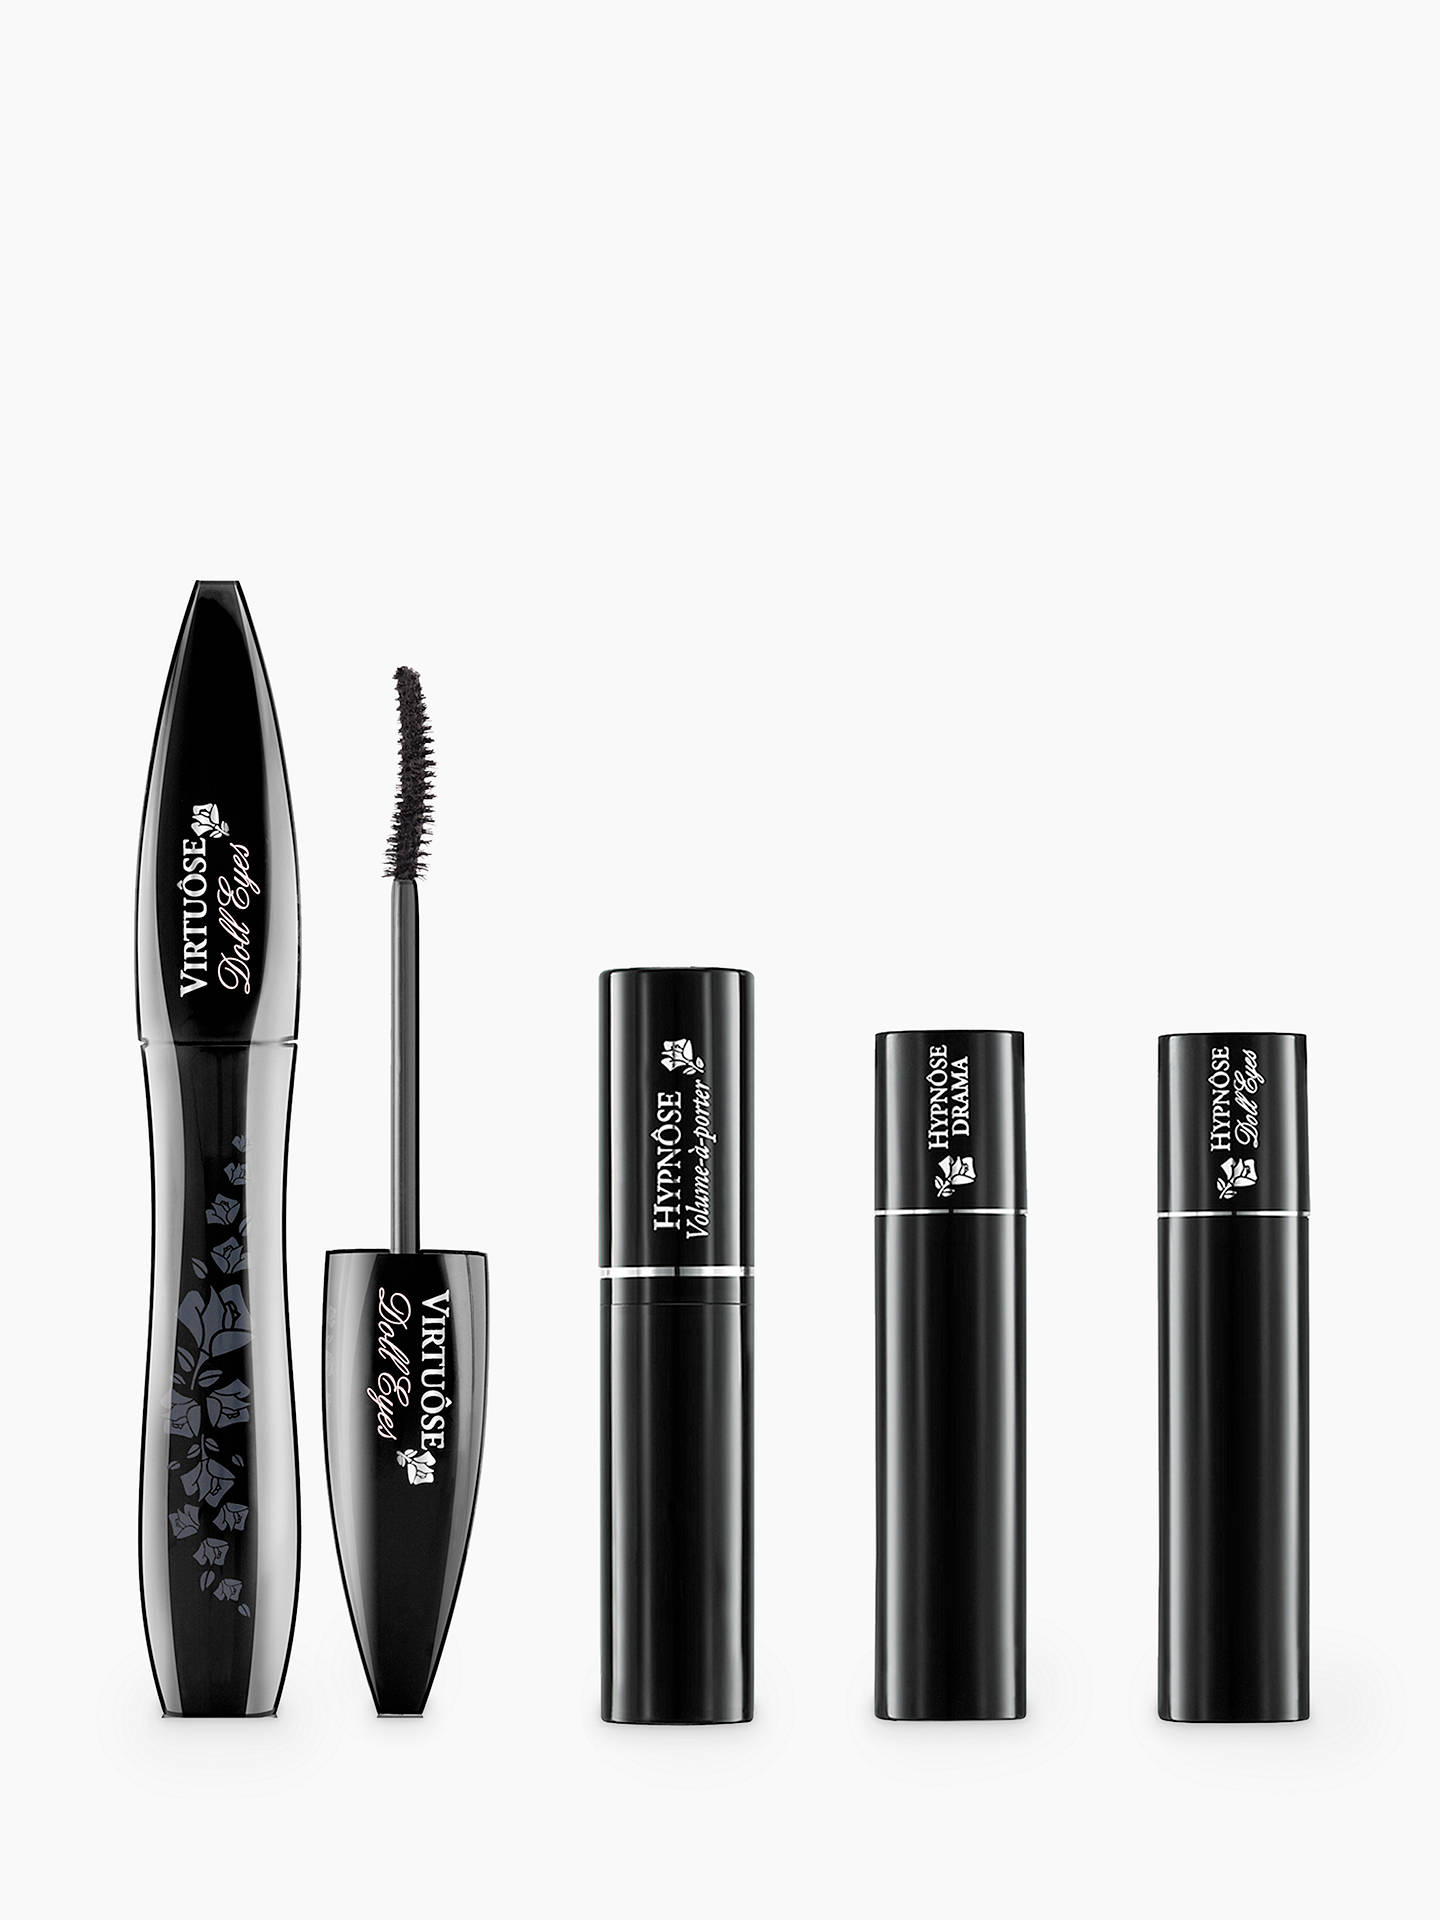 23977f218f7 ... Buy Lancôme Hypnôse Doll Eyes Mascara Minature Collection Makeup Gift  Set Online at johnlewis.com